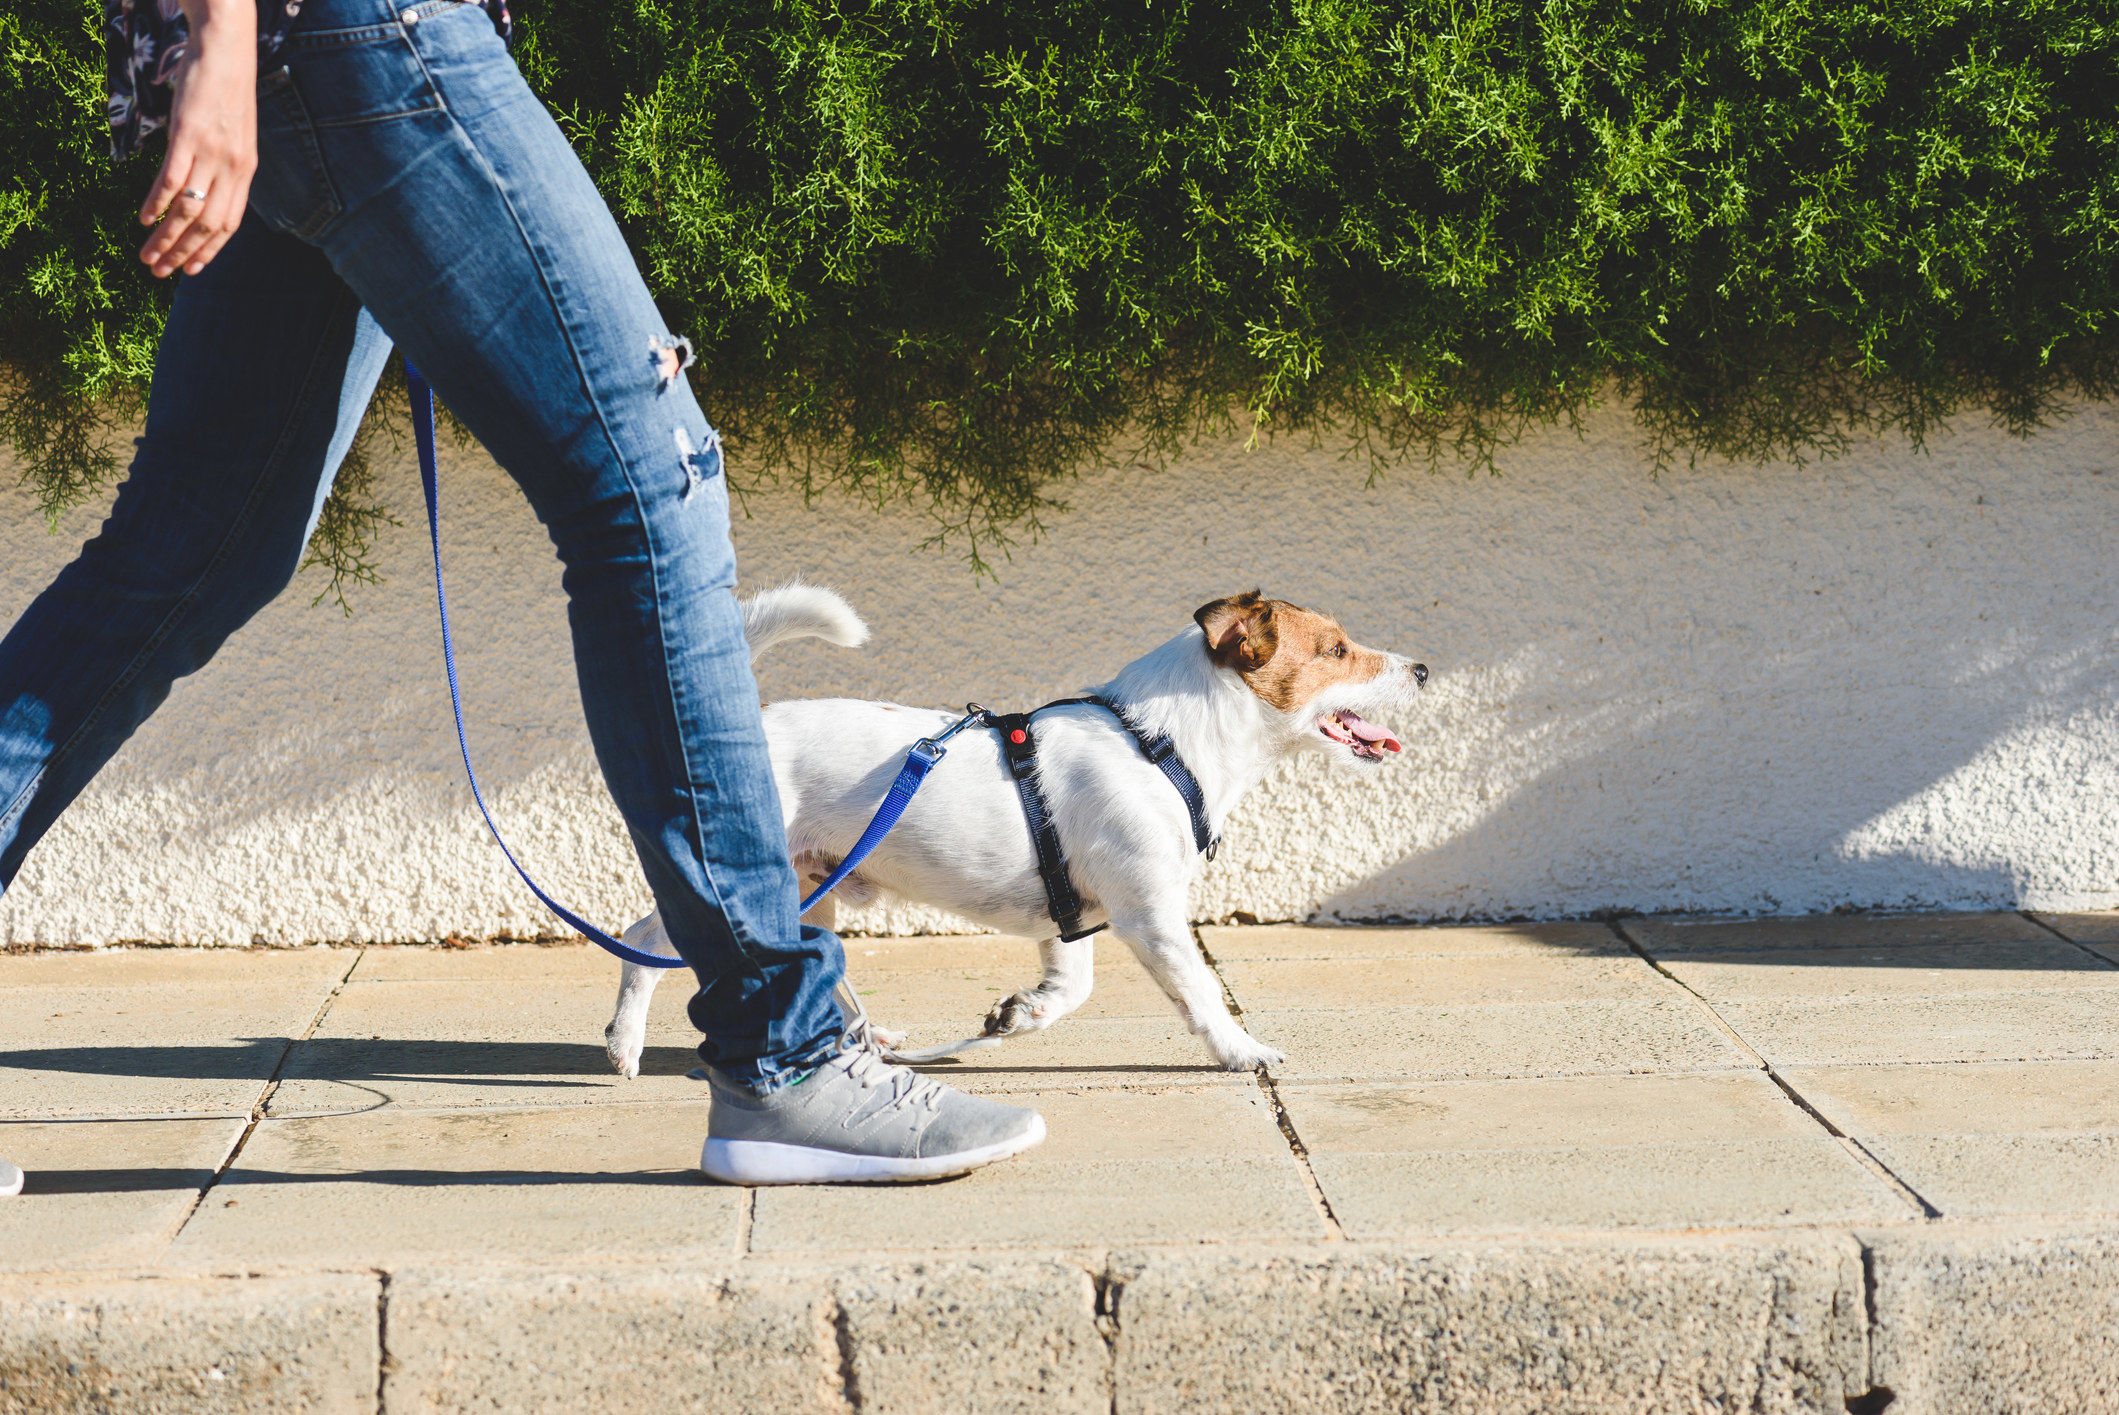 photo of someone walking their down outside, the person walking the dog is wearing grey sneakers and blue jeans while the dog looks happy being walked, the dog is wearing a blue collar